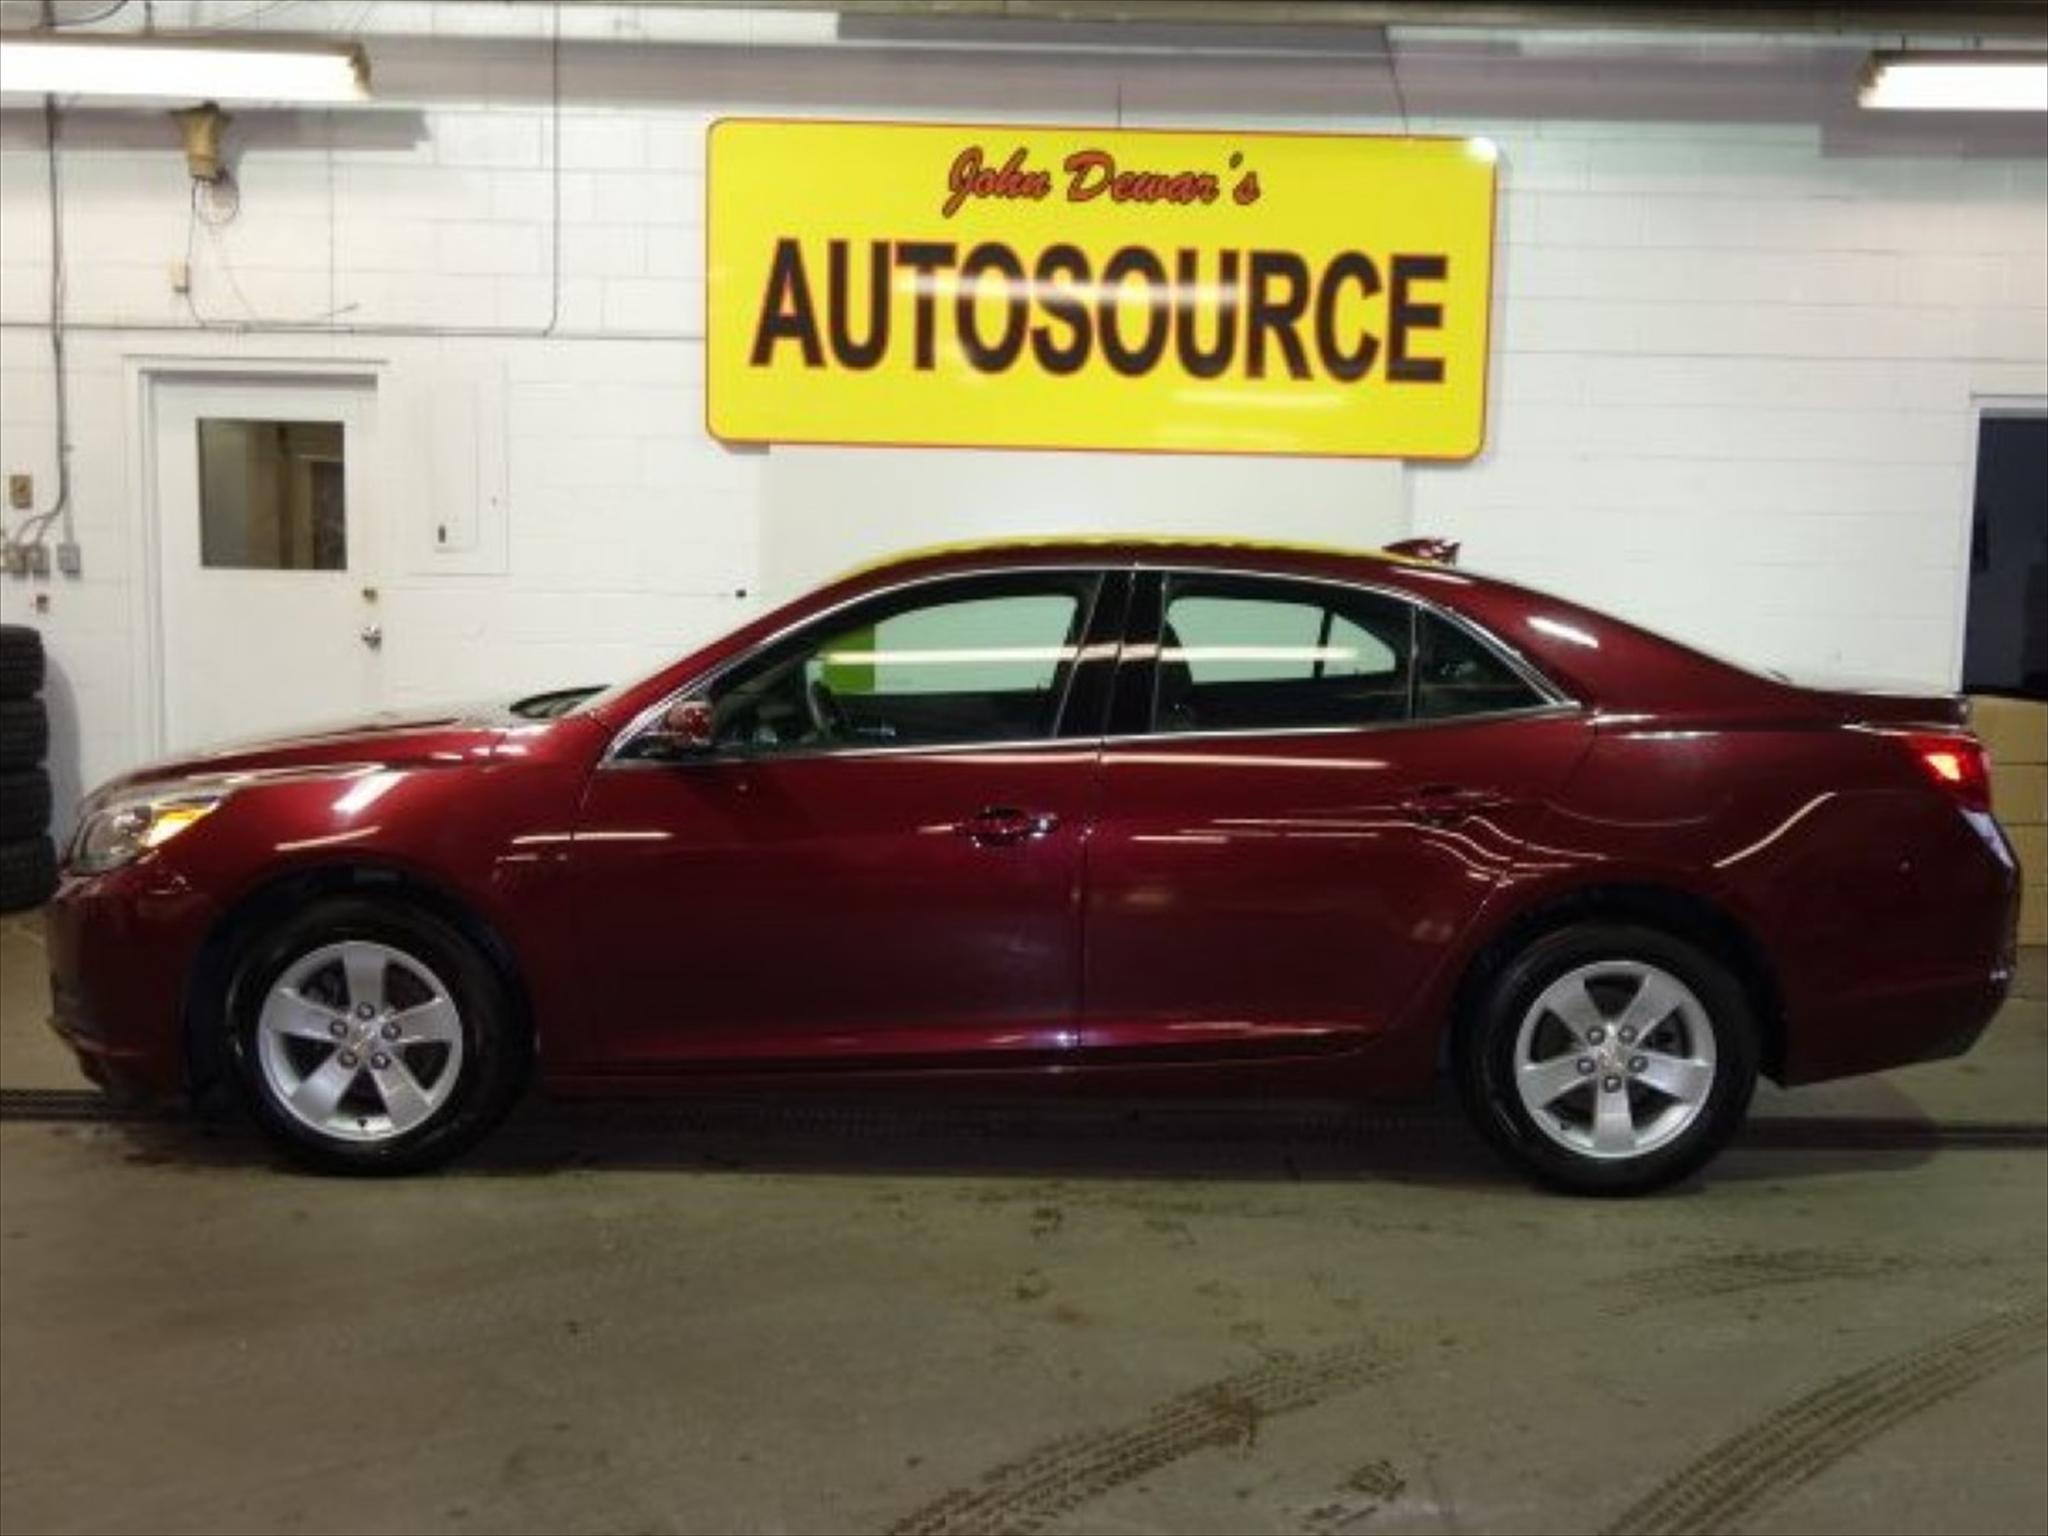 used 2016 chevrolet malibu 1lt for sale in peterborough on by john dewar 39 s autosource. Black Bedroom Furniture Sets. Home Design Ideas